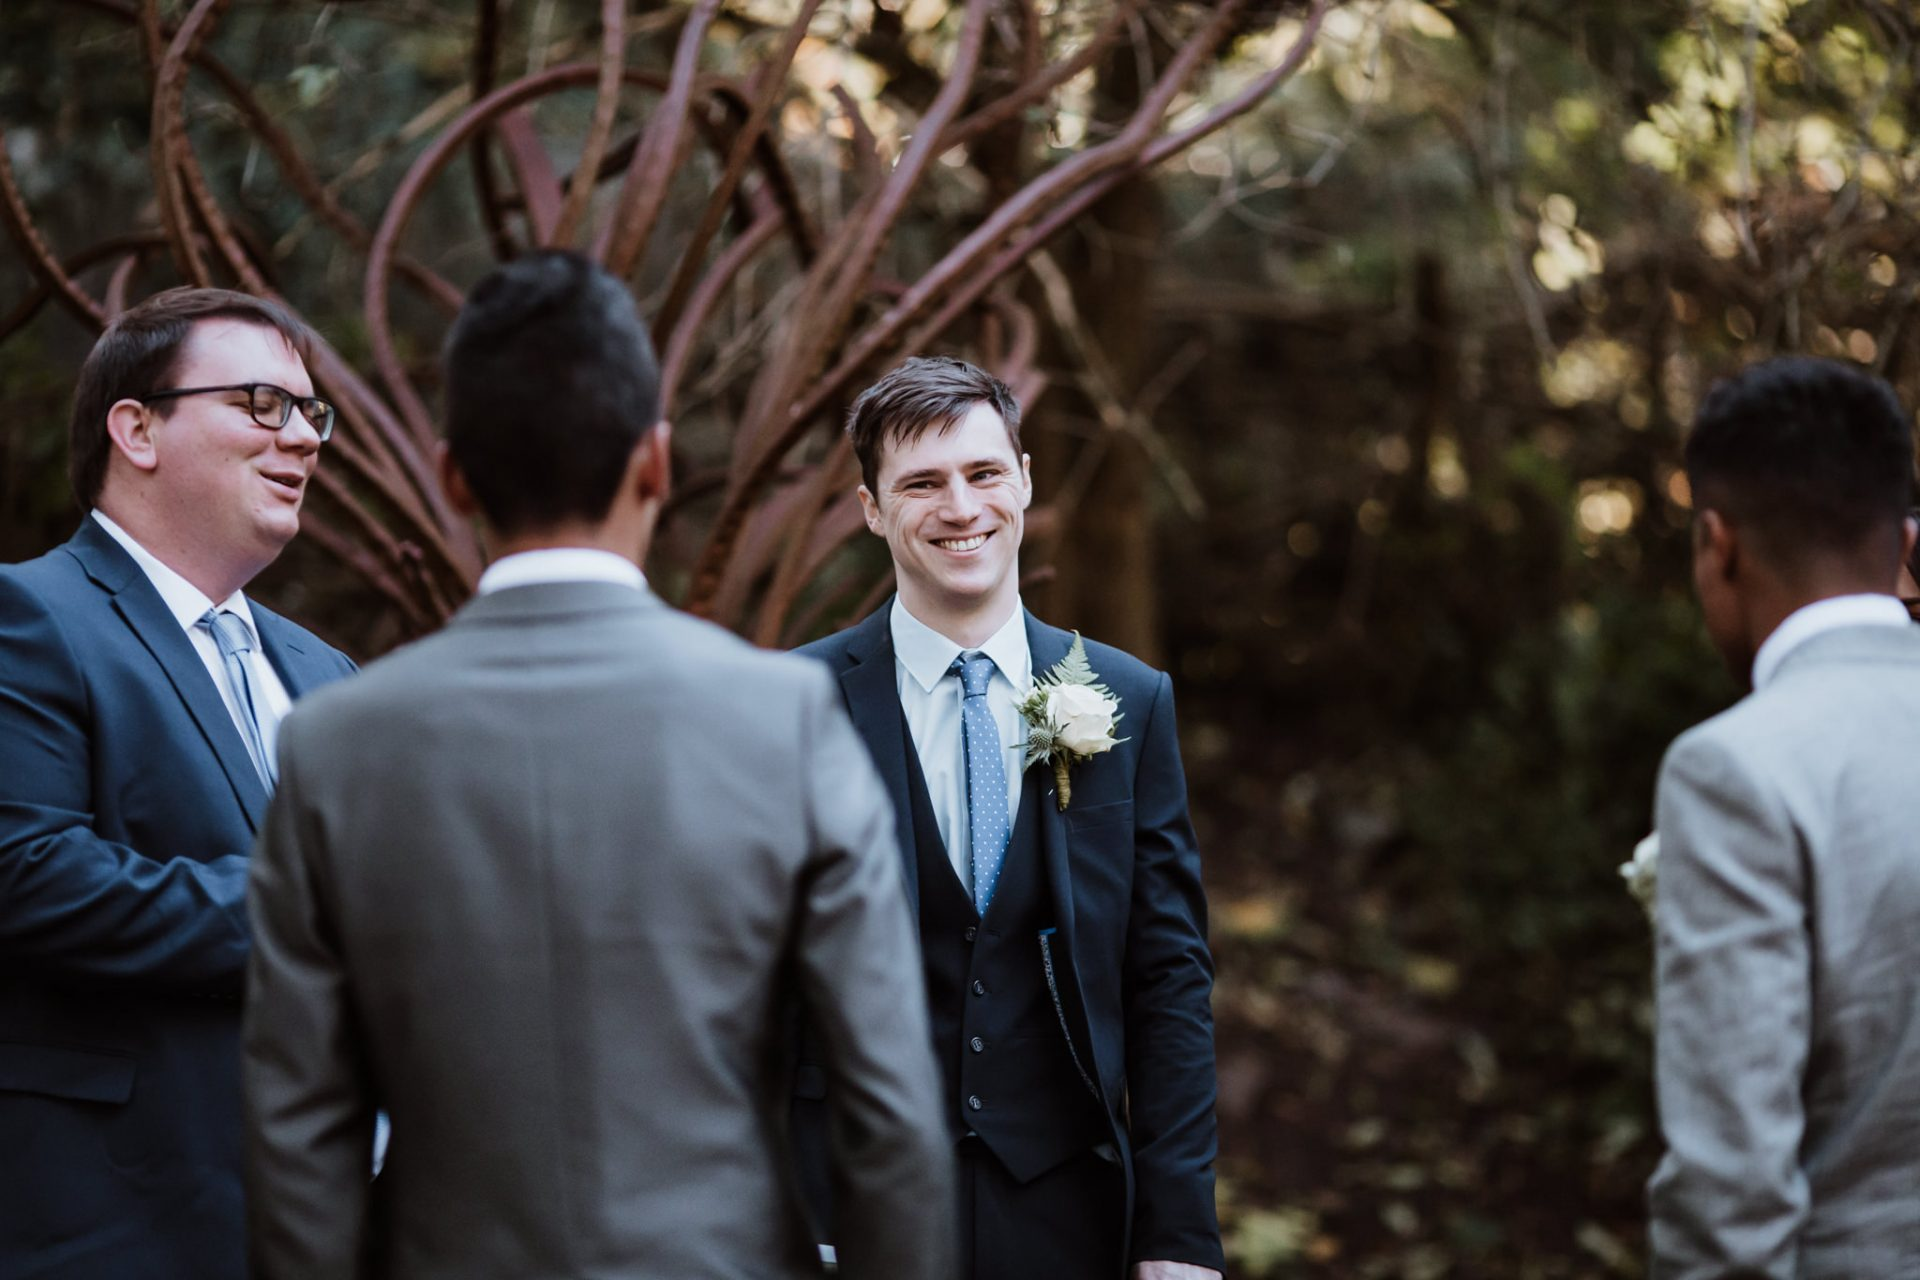 groom laughing with guests before ceremony